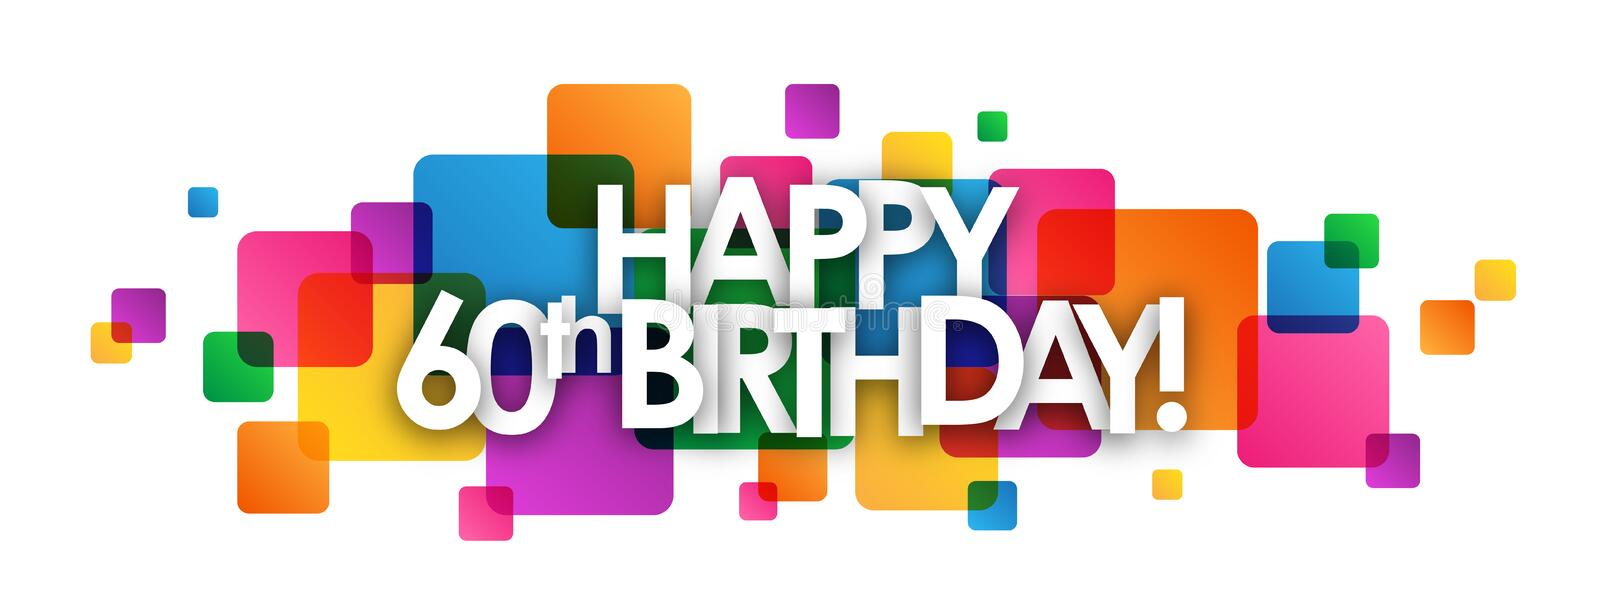 HAPPY 60th BIRTHDAY! colorful overlapping squares banner vector illustration